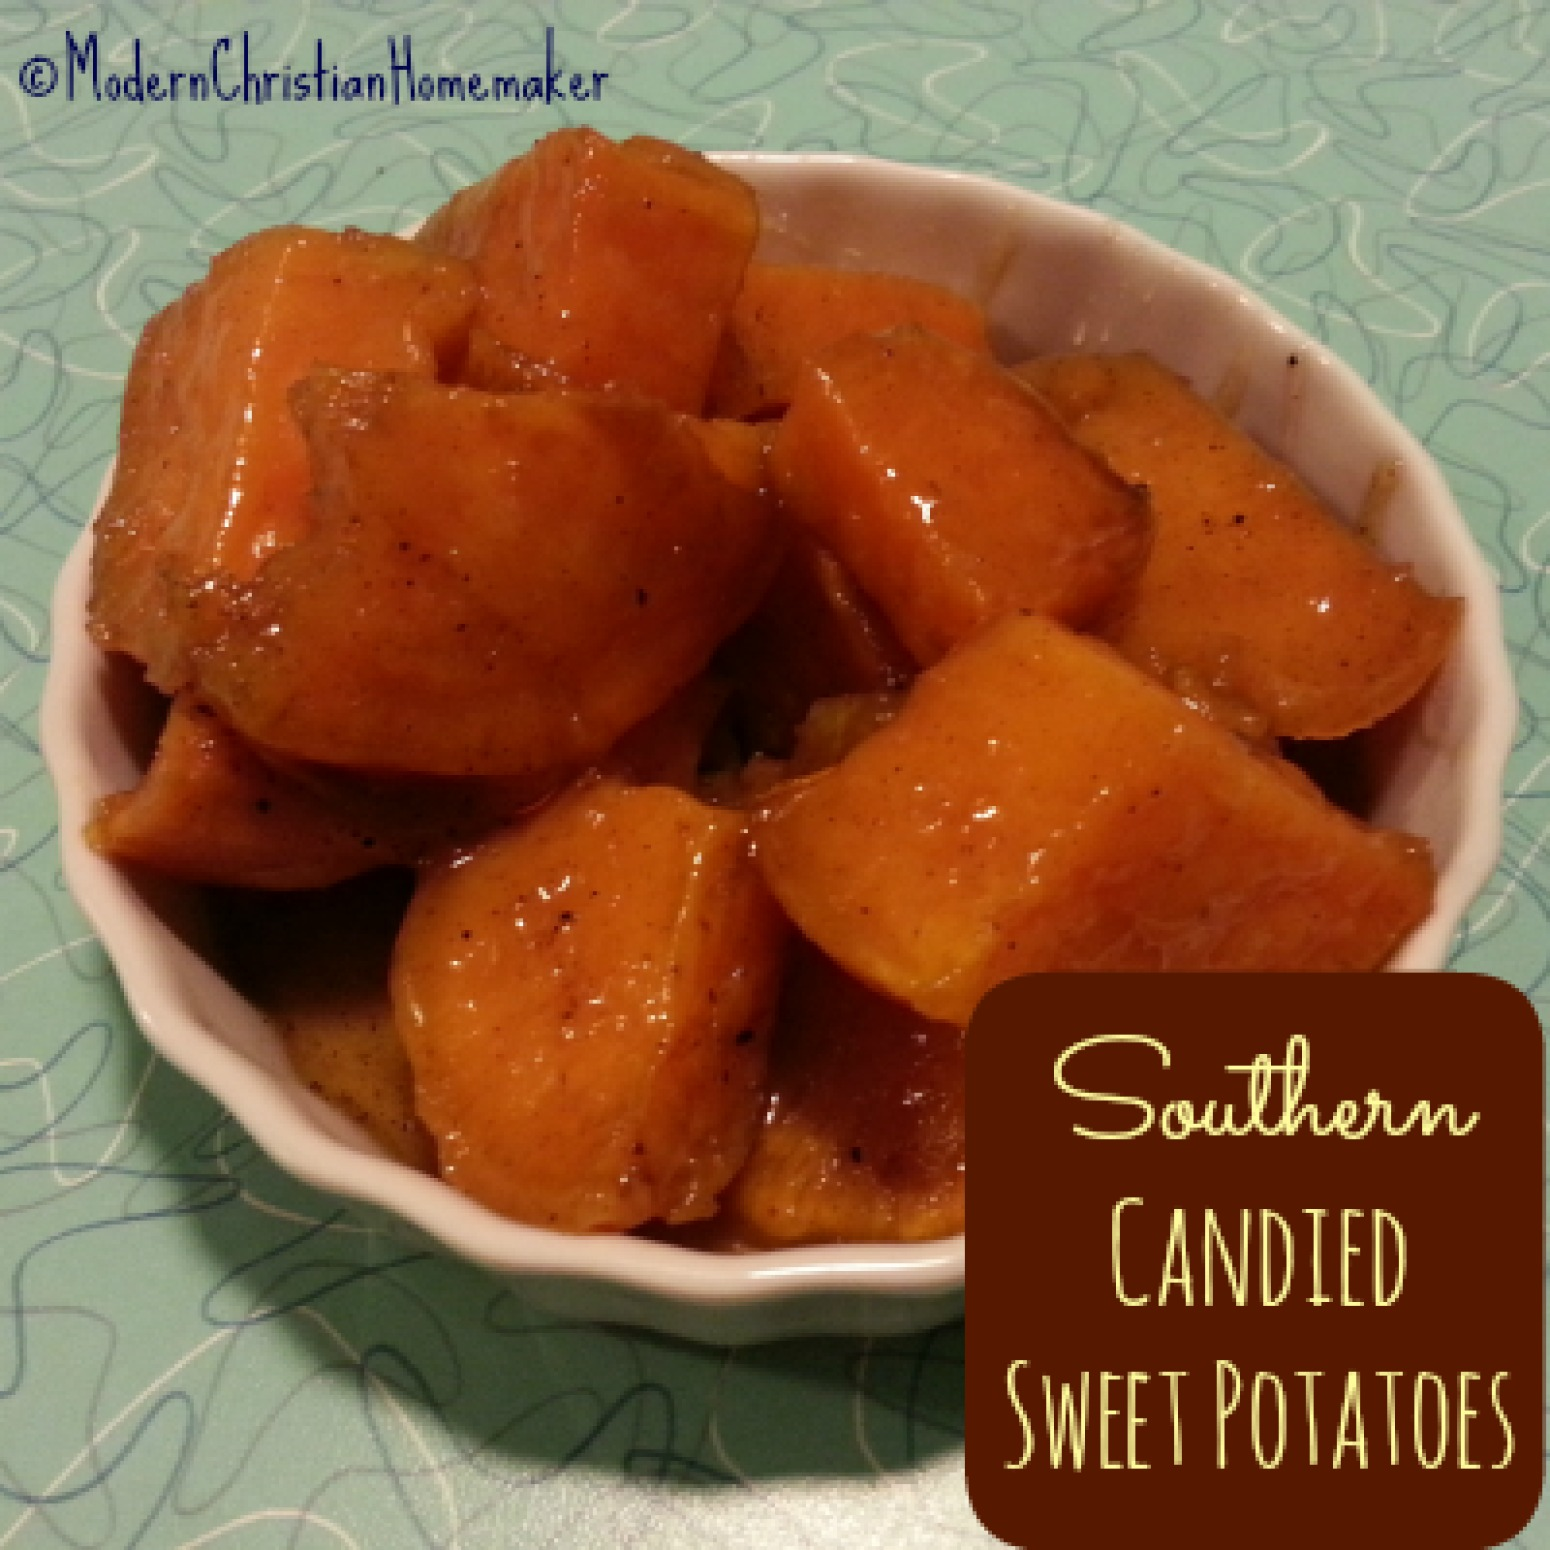 Decadent Southern Candied Sweet Potatoes Recipe